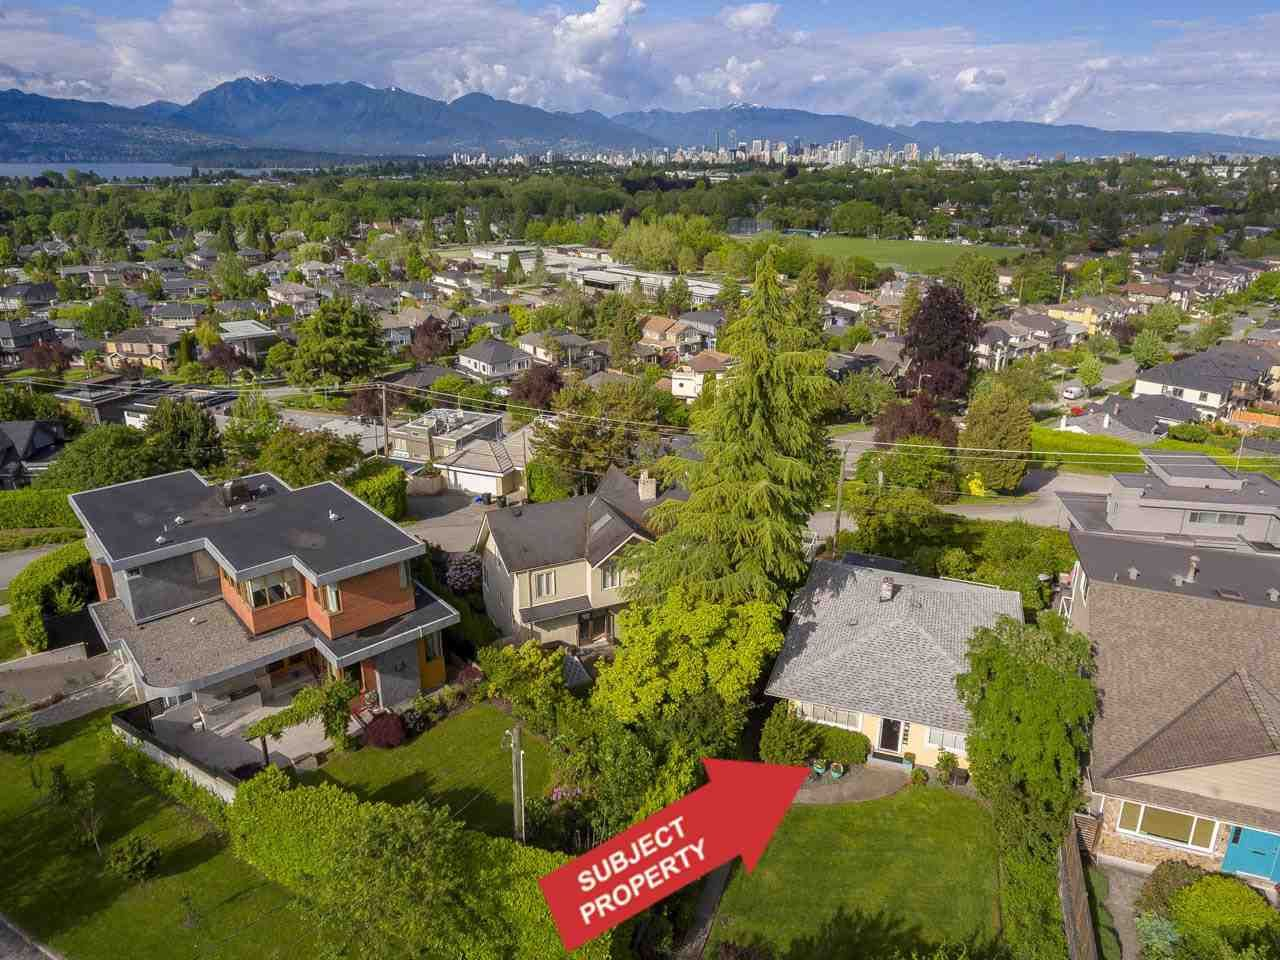 Main Photo: 3626 QUESNEL DRIVE in Vancouver: Arbutus House for sale (Vancouver West)  : MLS®# R2372113